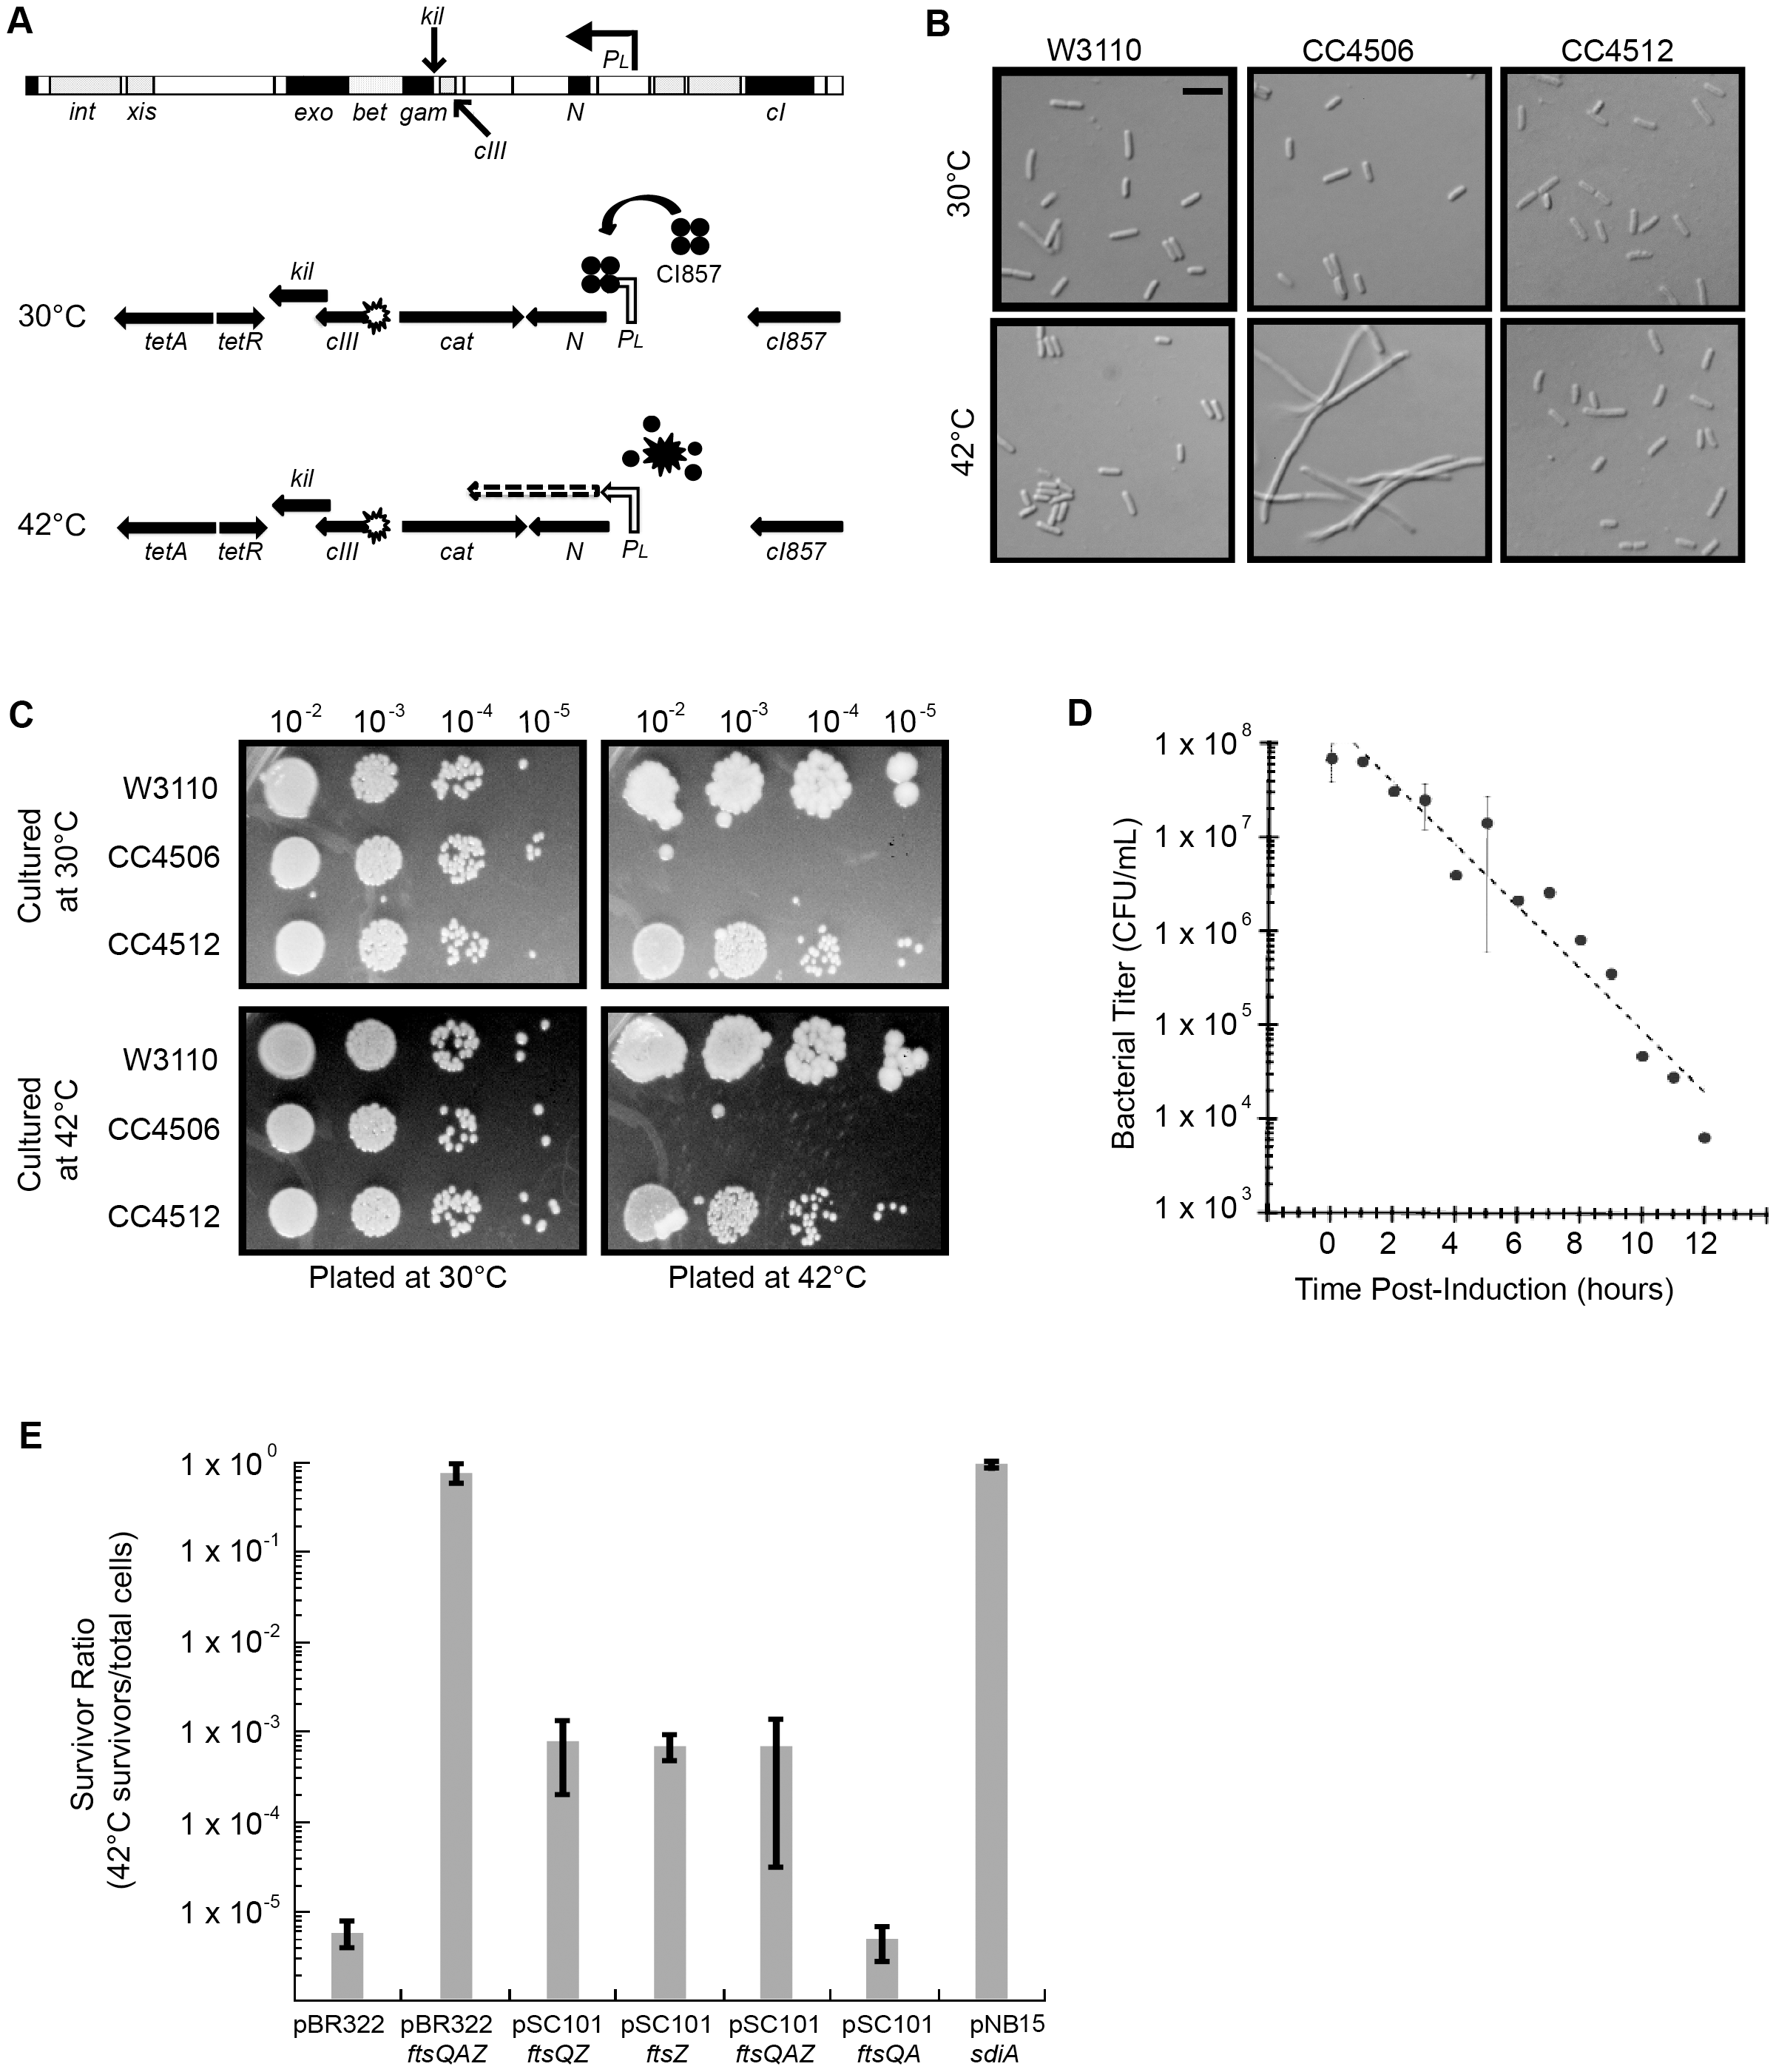 Induction of λ <i>kil</i> interferes with <i>E. coli</i> cell division, but is suppressed by <i>ftsZ</i> overexpression.